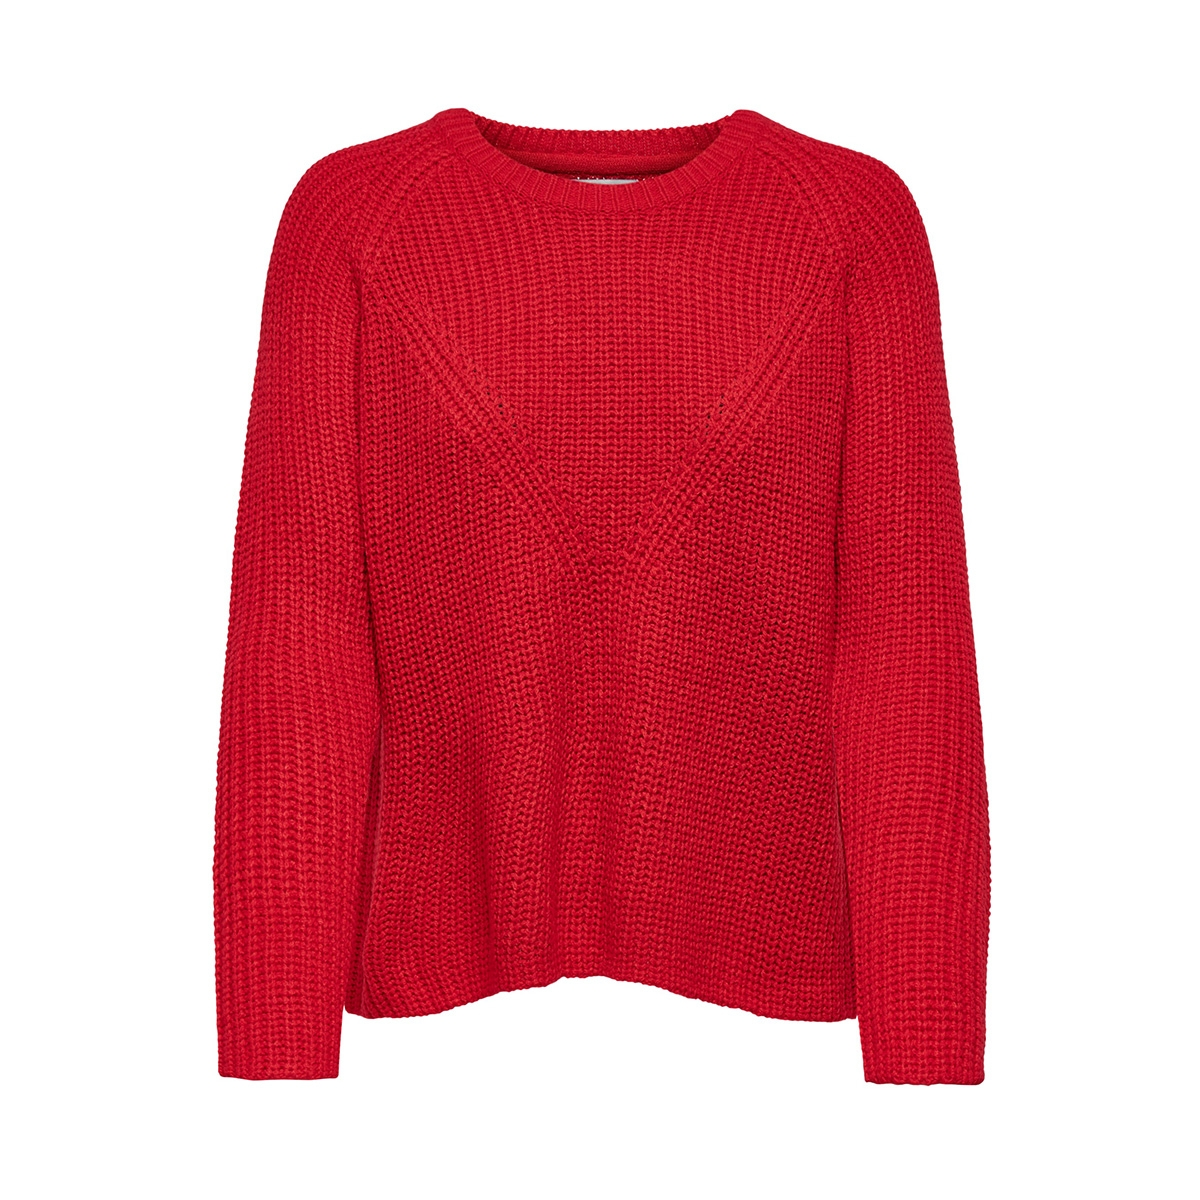 jdyjusty 7/8 noos pullover knt 15154667 jacqueline de yong trui goji berry